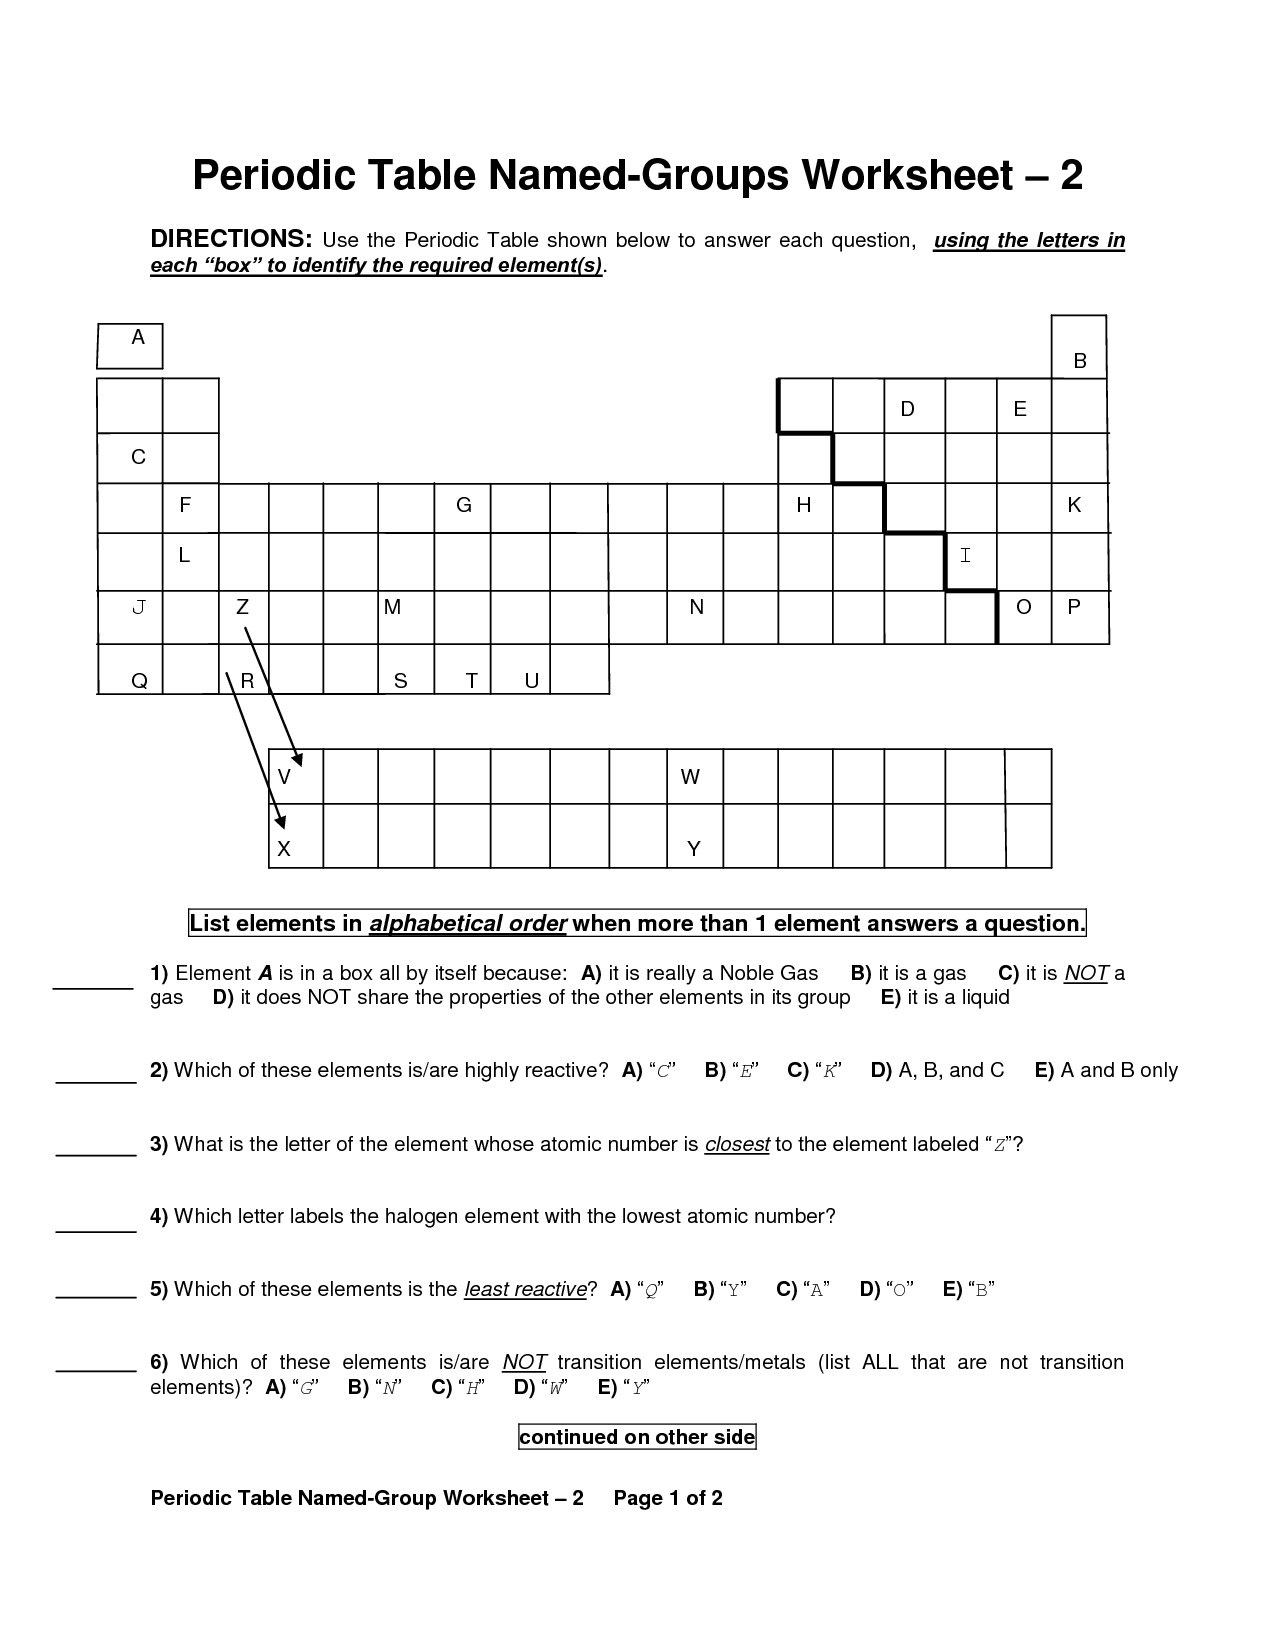 Periodic Table Worksheet Key Periodic Table